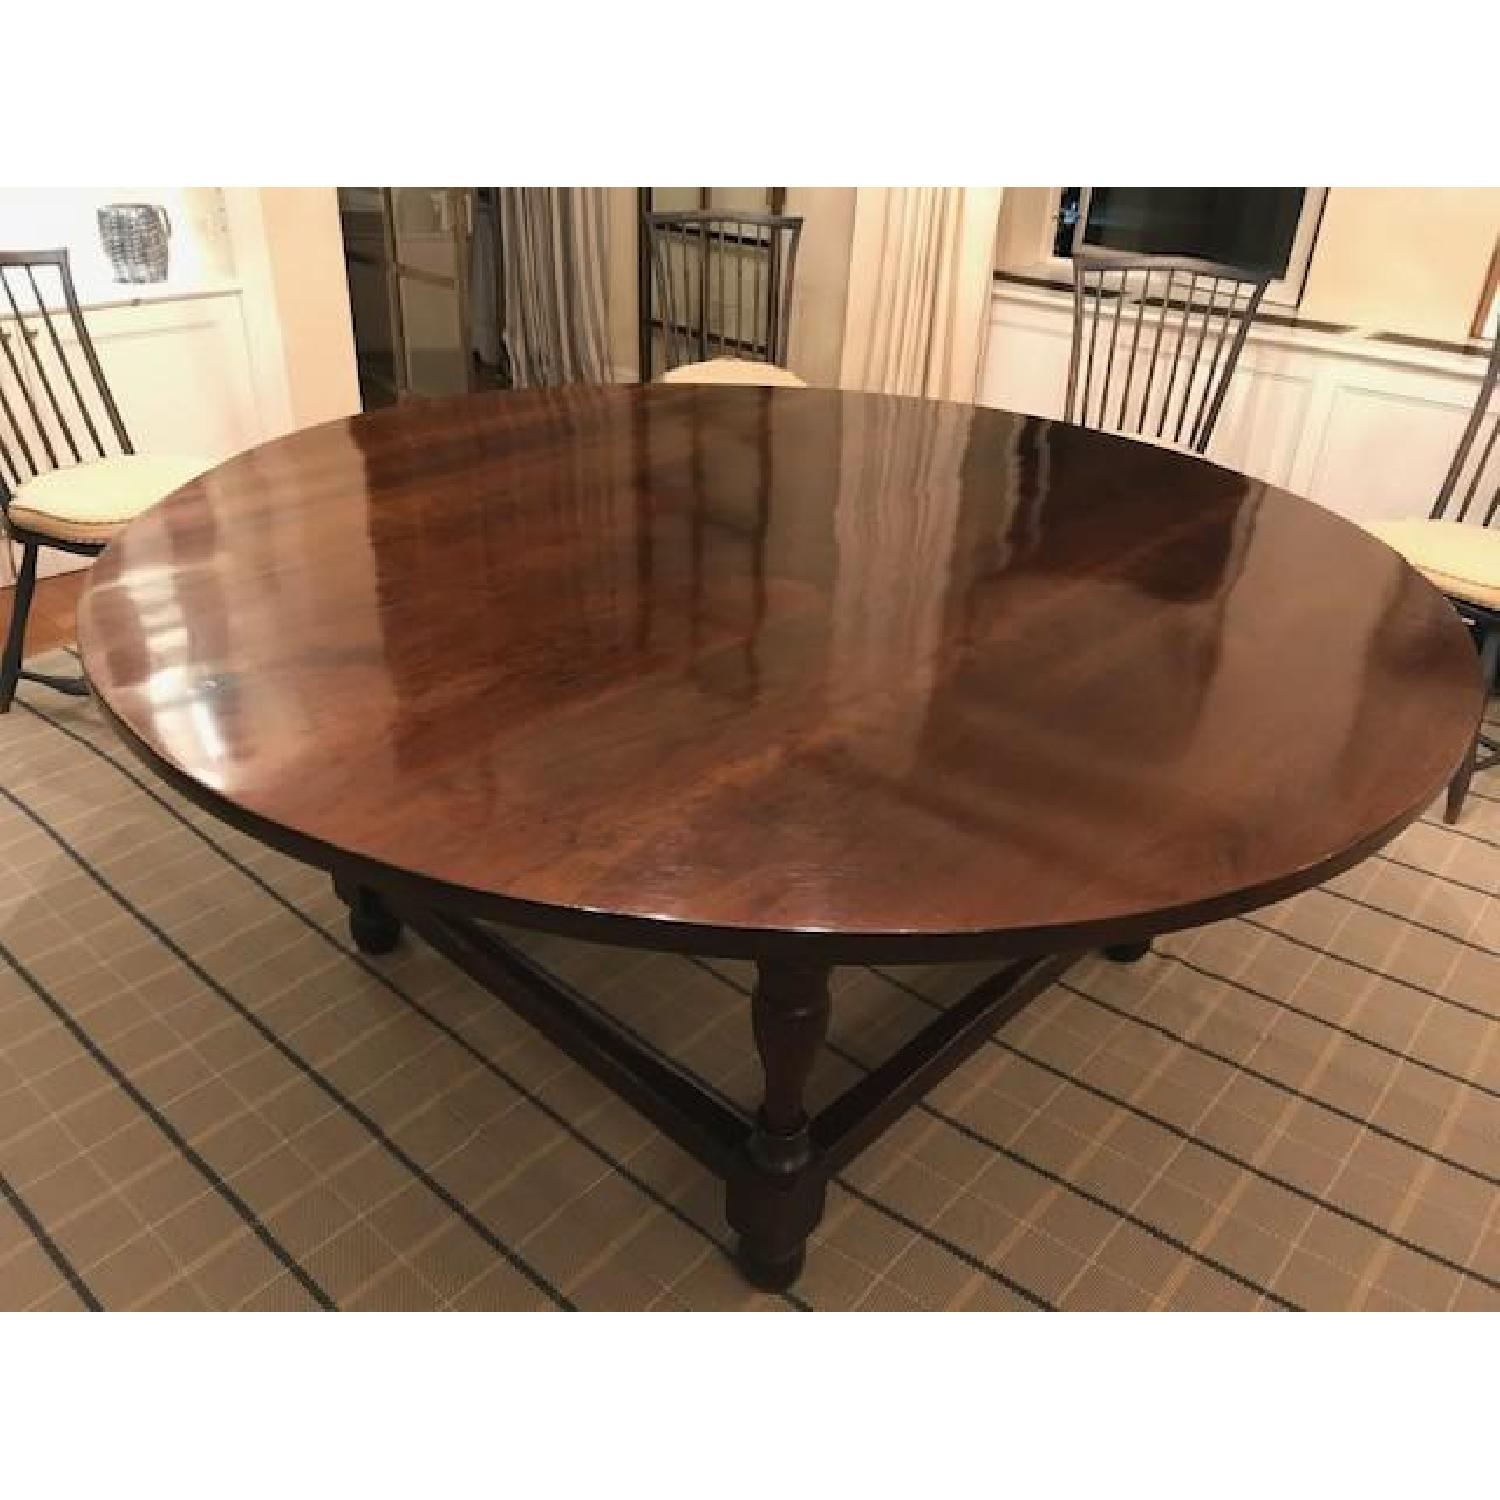 ABC Carpet and Home Round Dining Table - image-4